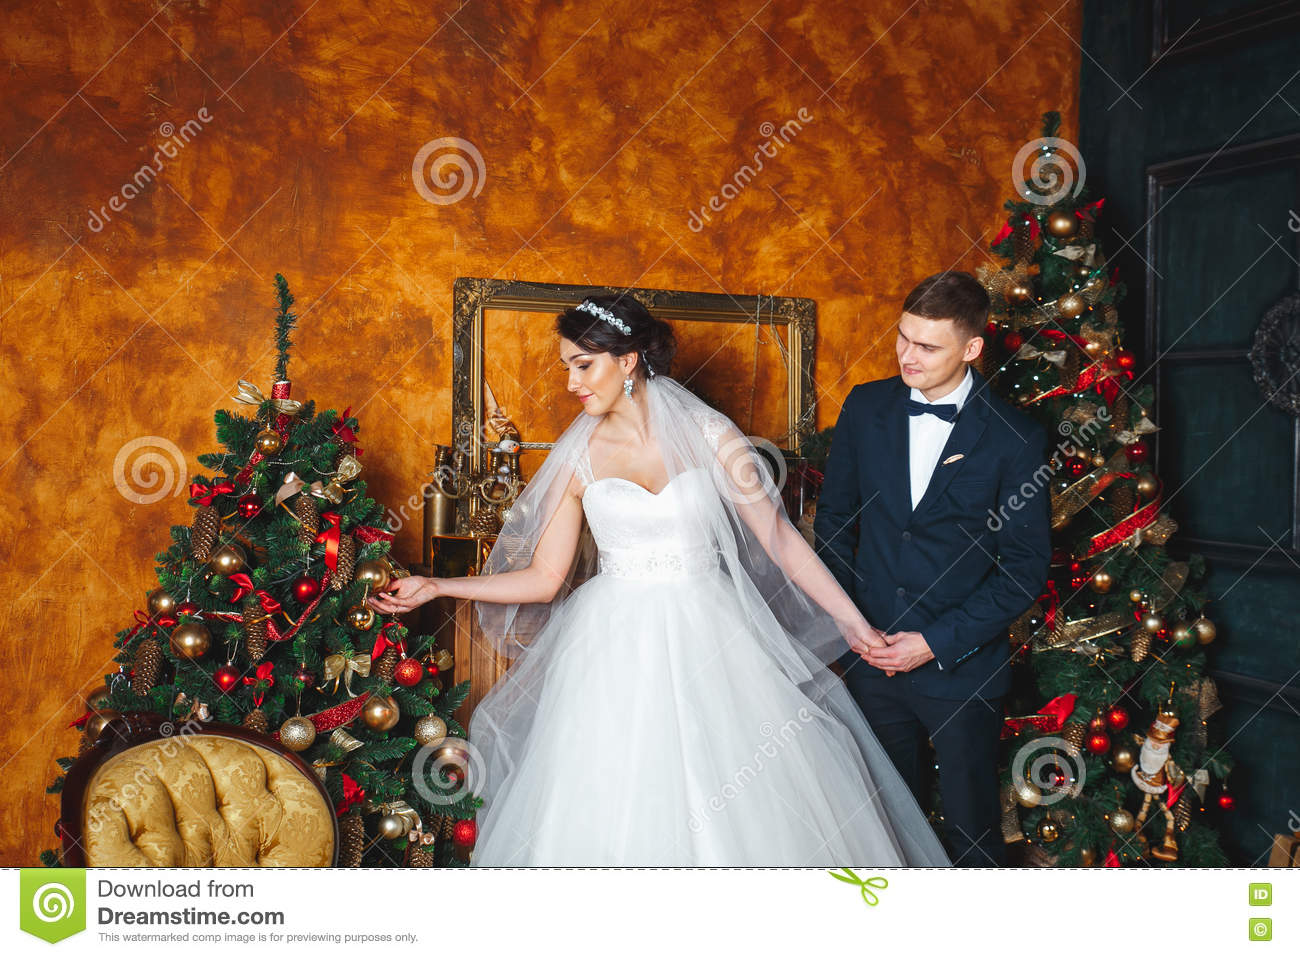 Winter Wedding Lovers Bride And Groom In Christmas Decoration